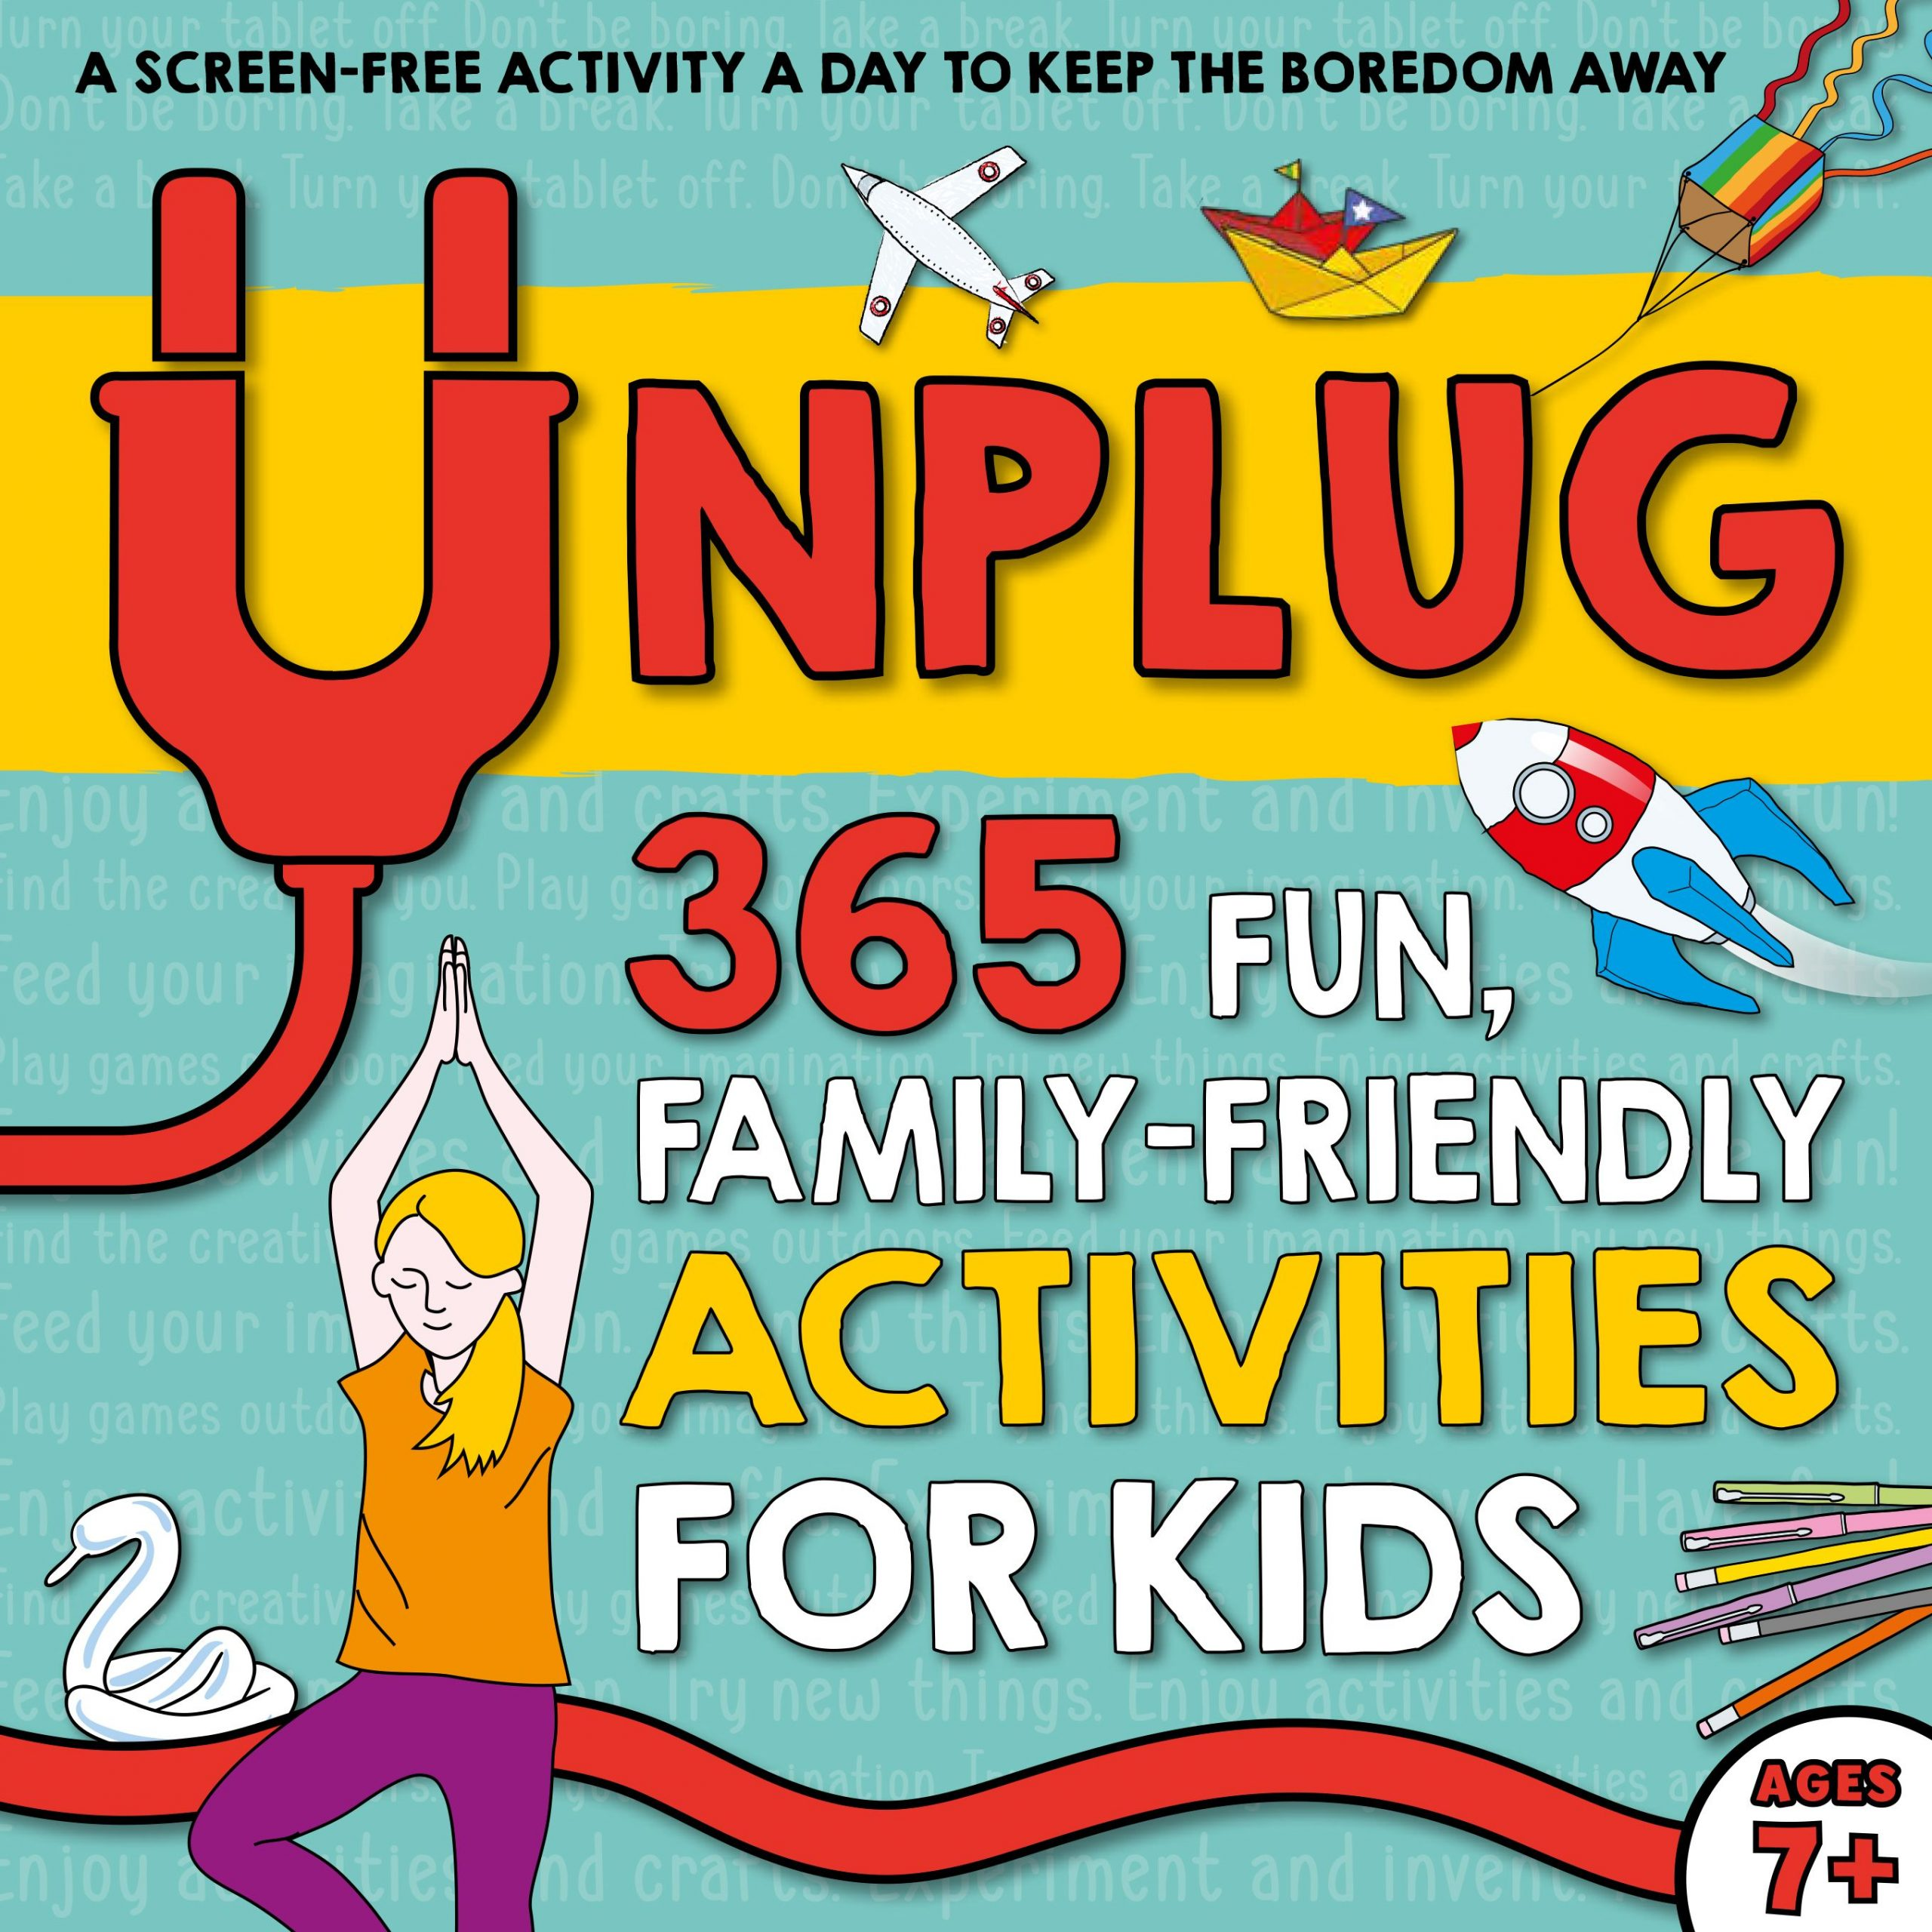 Unplug with these Fun Family-Friendly Activities for Kids